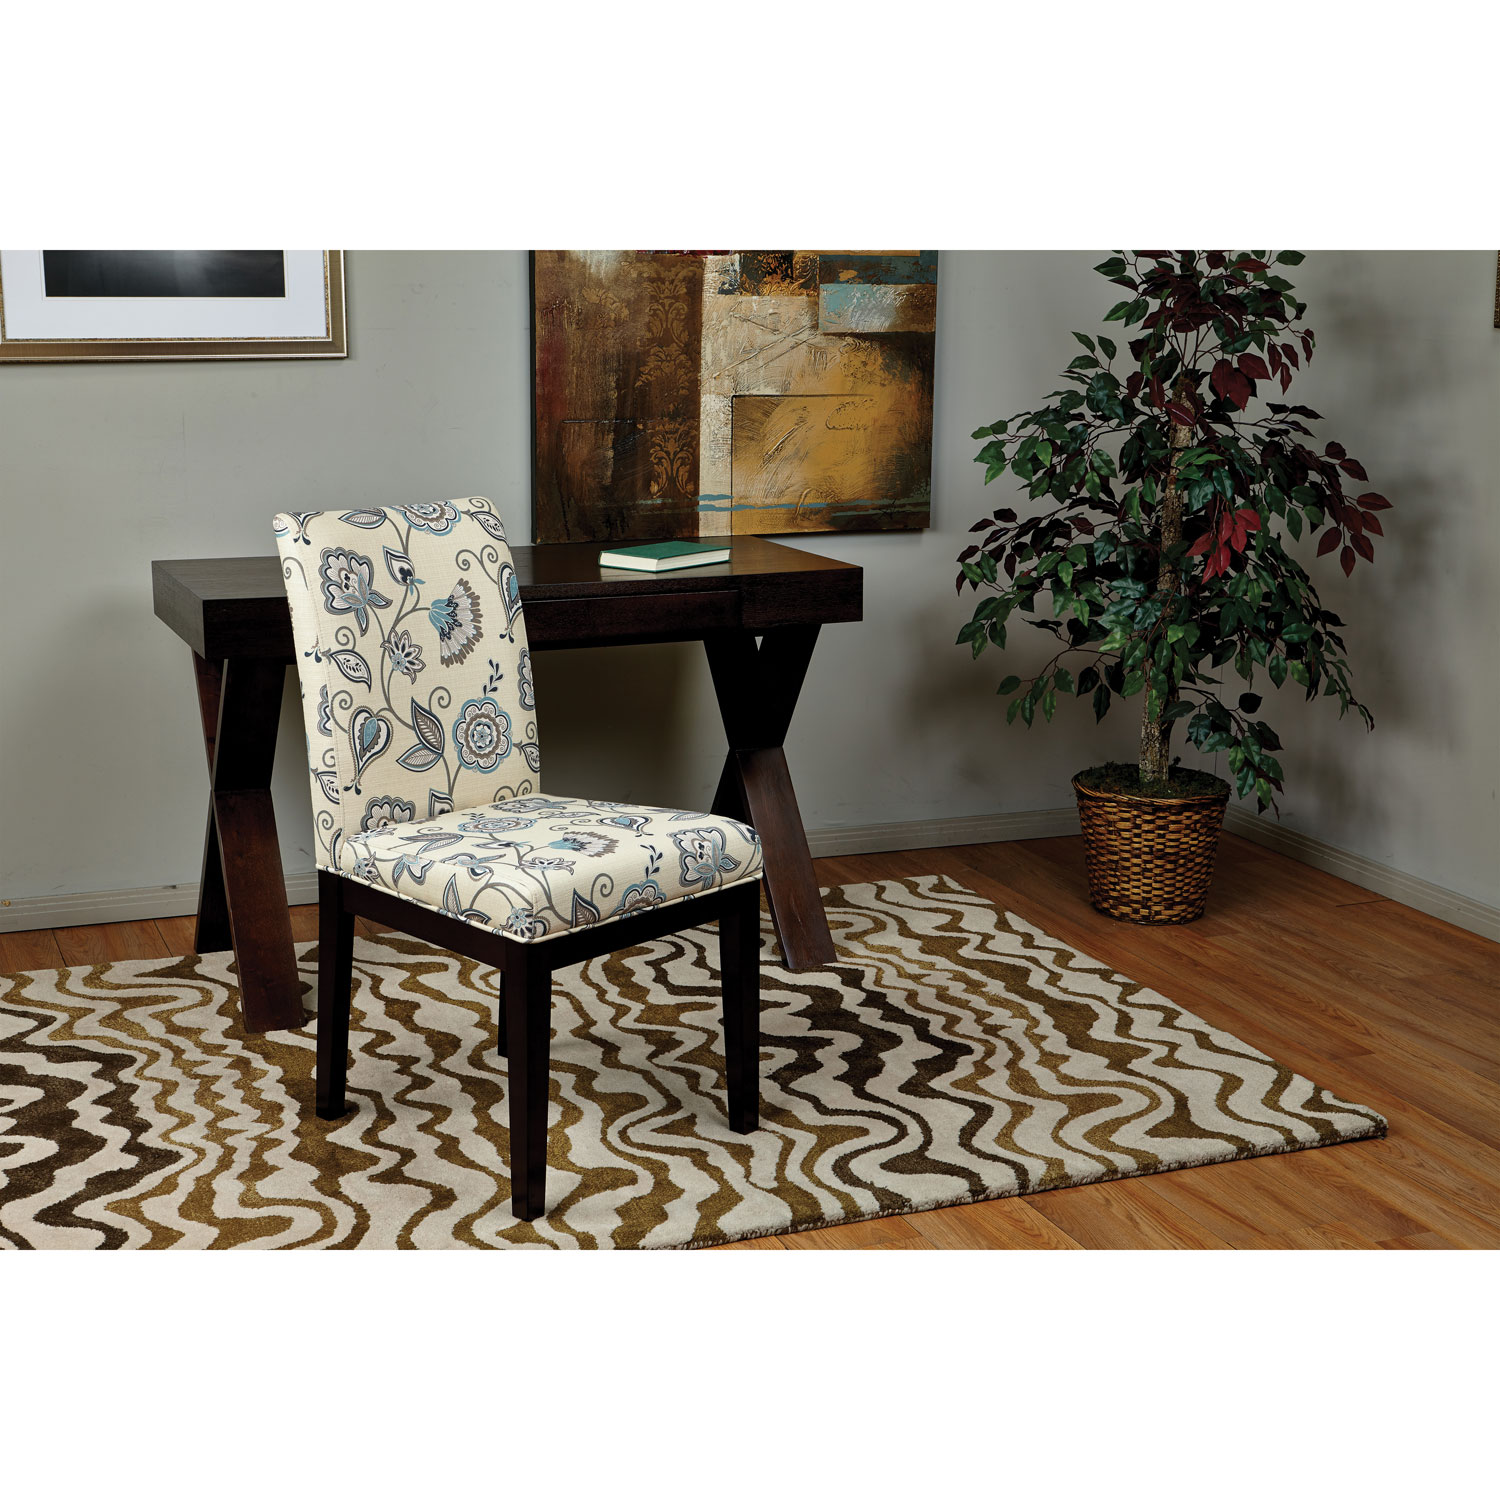 dakota traditional fabric dining chair  avignon sky pattern  - dakota traditional fabric dining chair  avignon sky pattern  dining chairs best buy canada